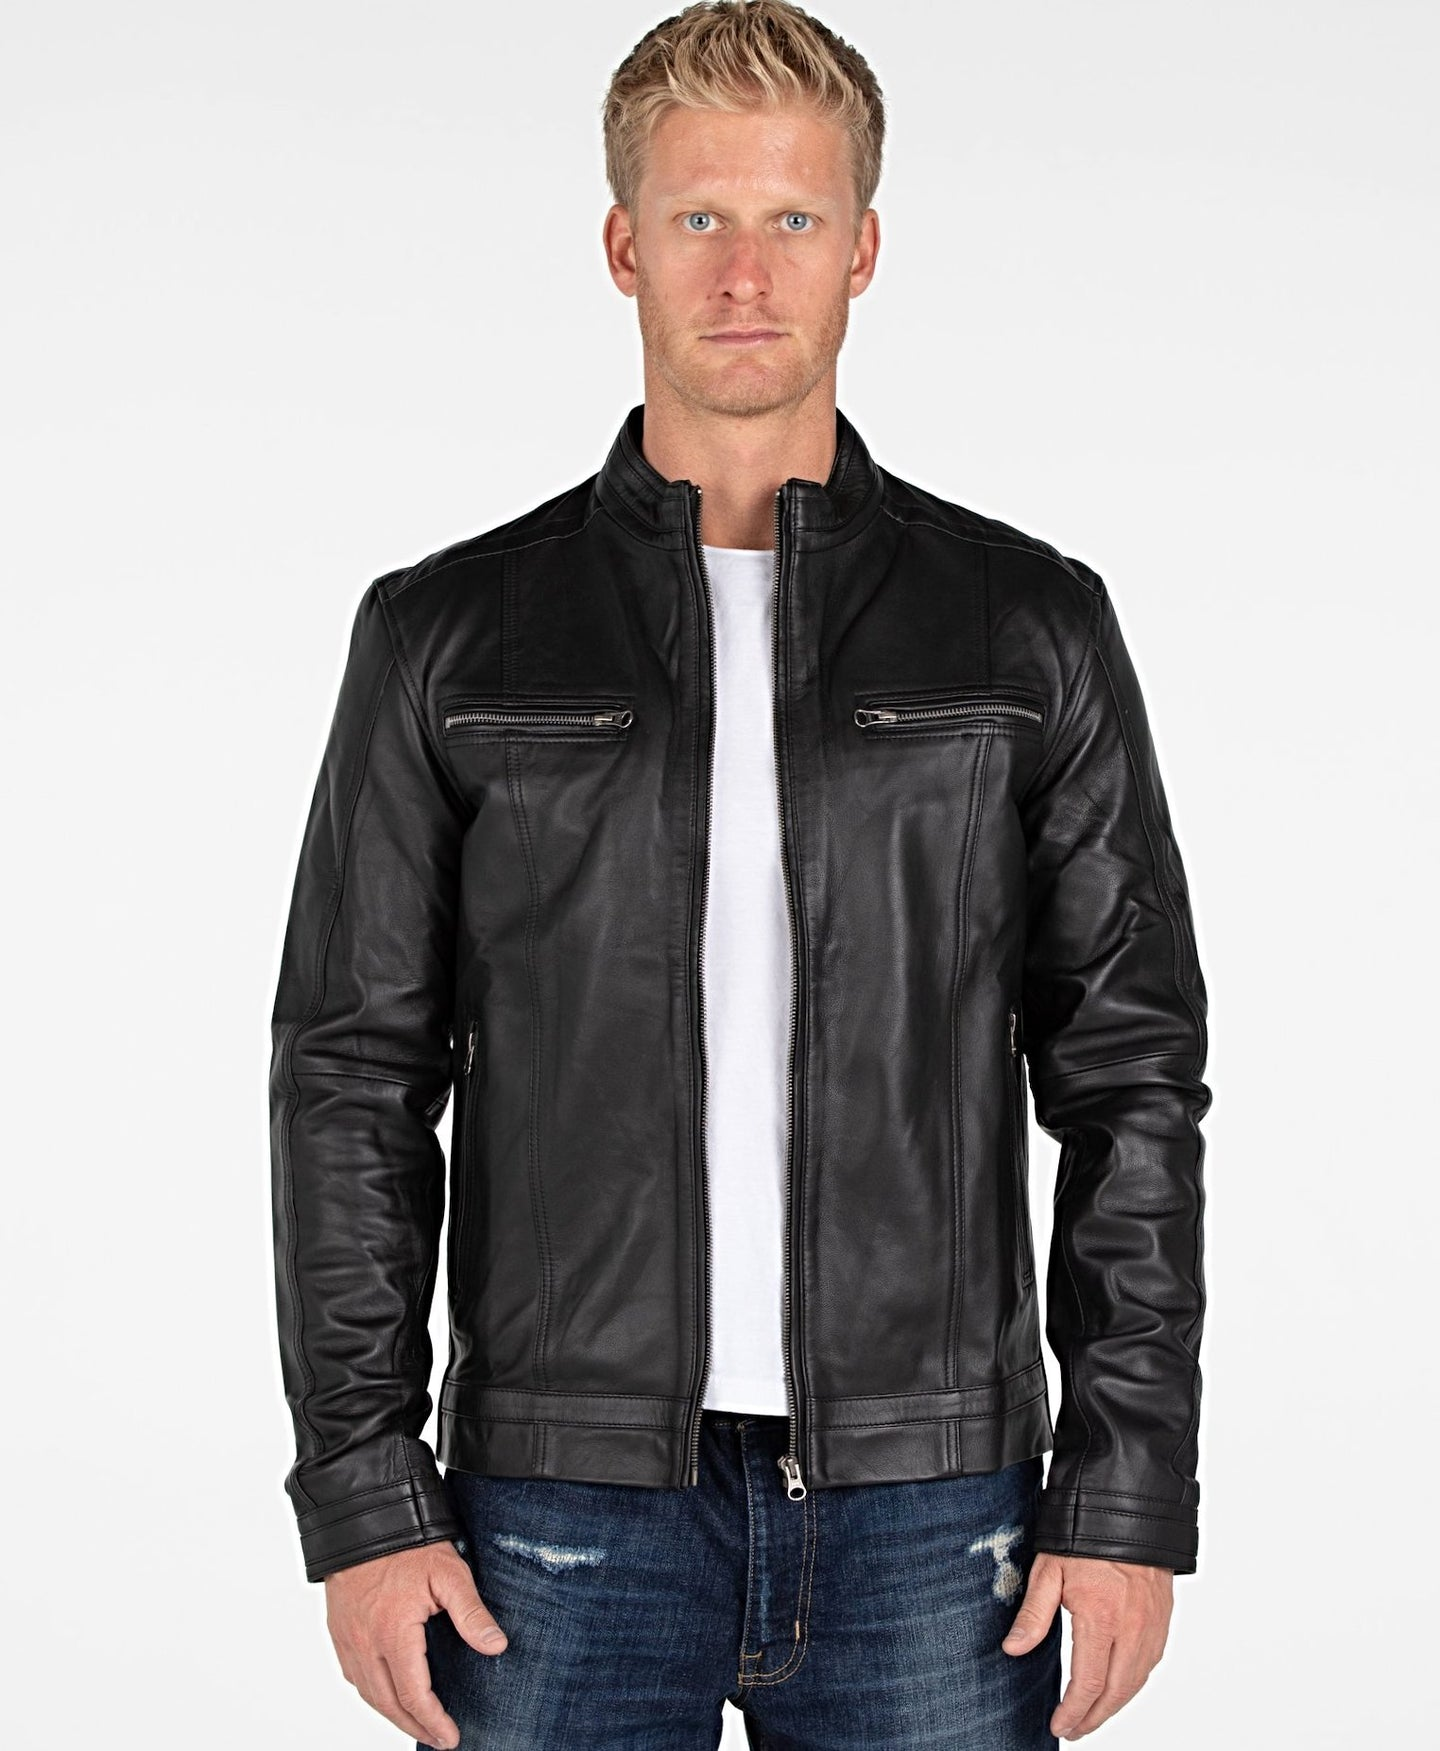 Wilson Mens Leather Jacket - Discounted!-Leather Jacket-Fadcloset-XS-Black-FADCLOSET CA